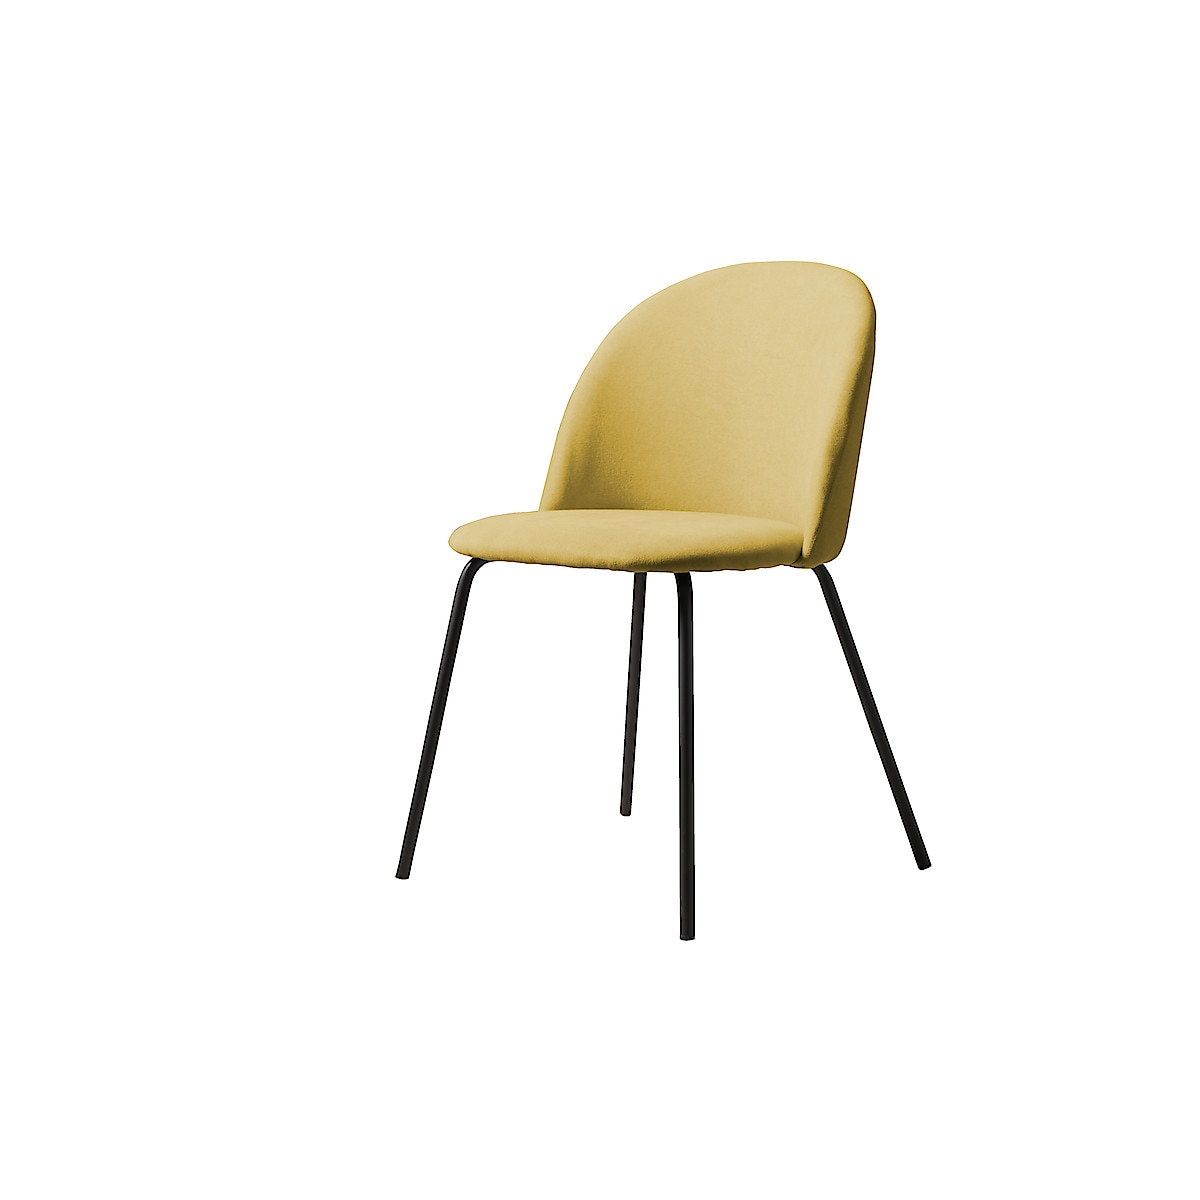 Upholstered Dining Chair with Steel Frame